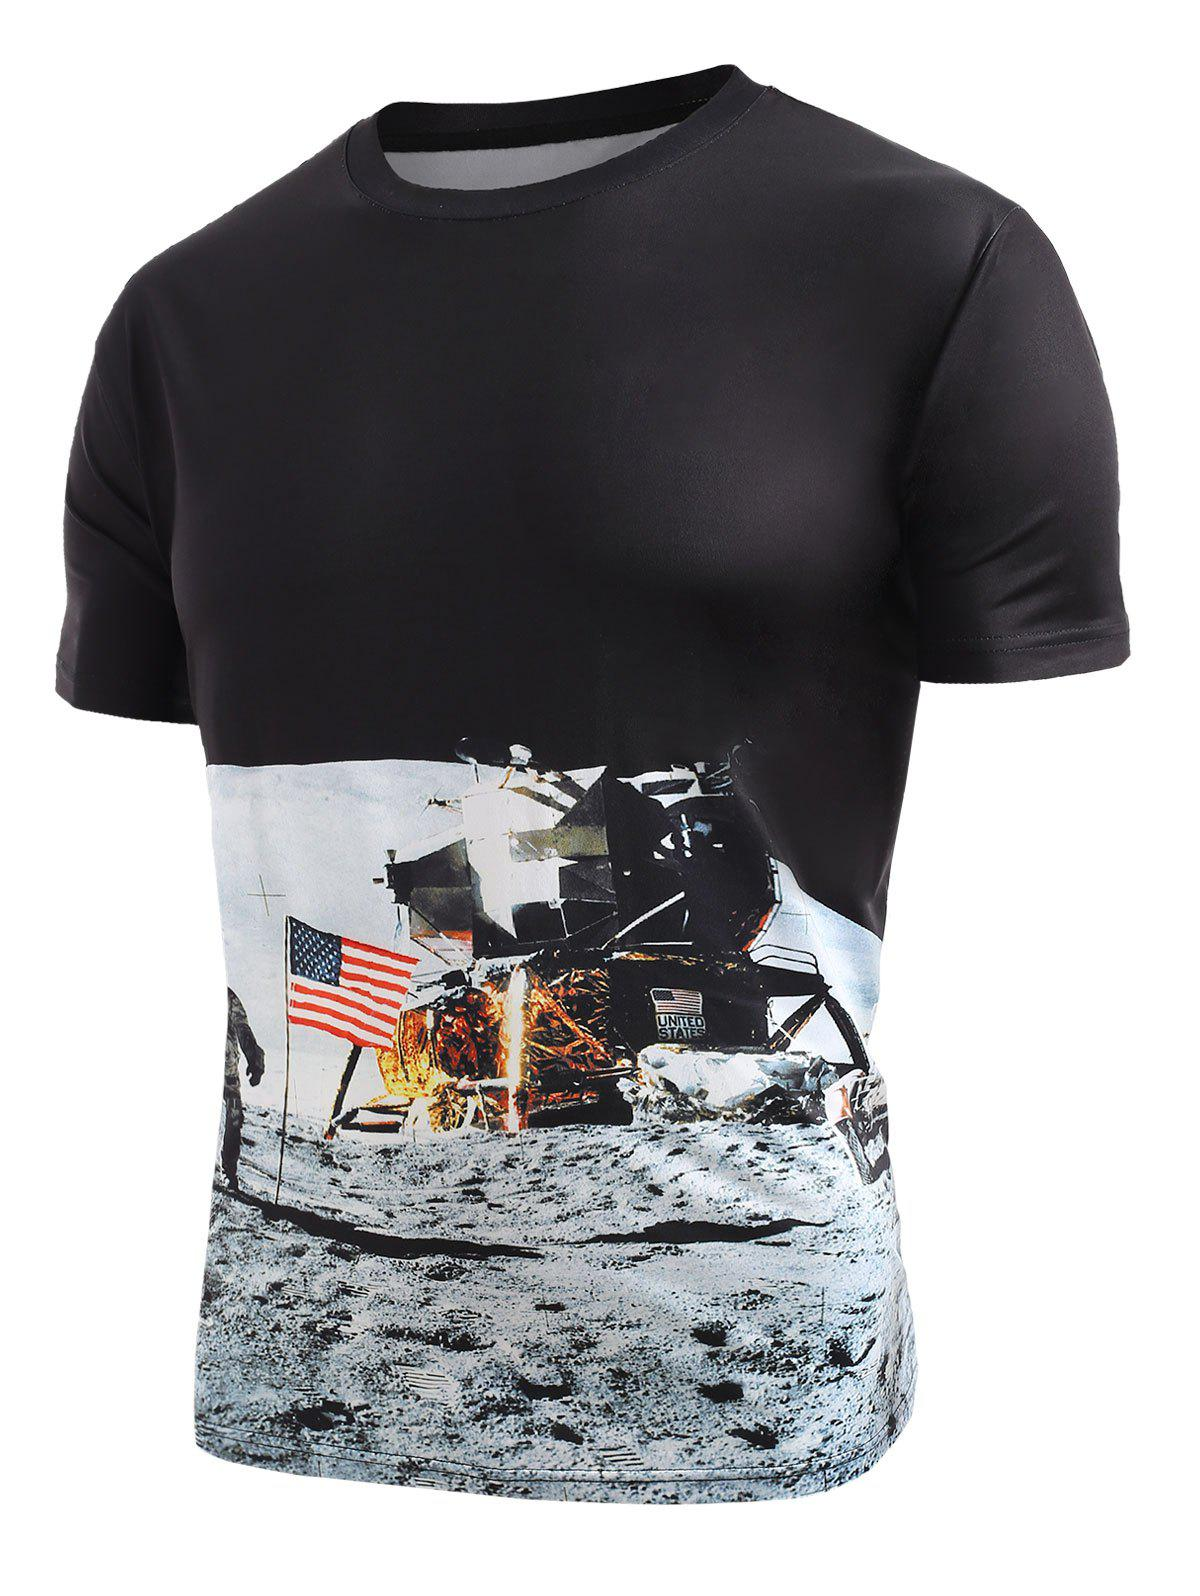 Best Astronaut American Flag Pattern T-shirt